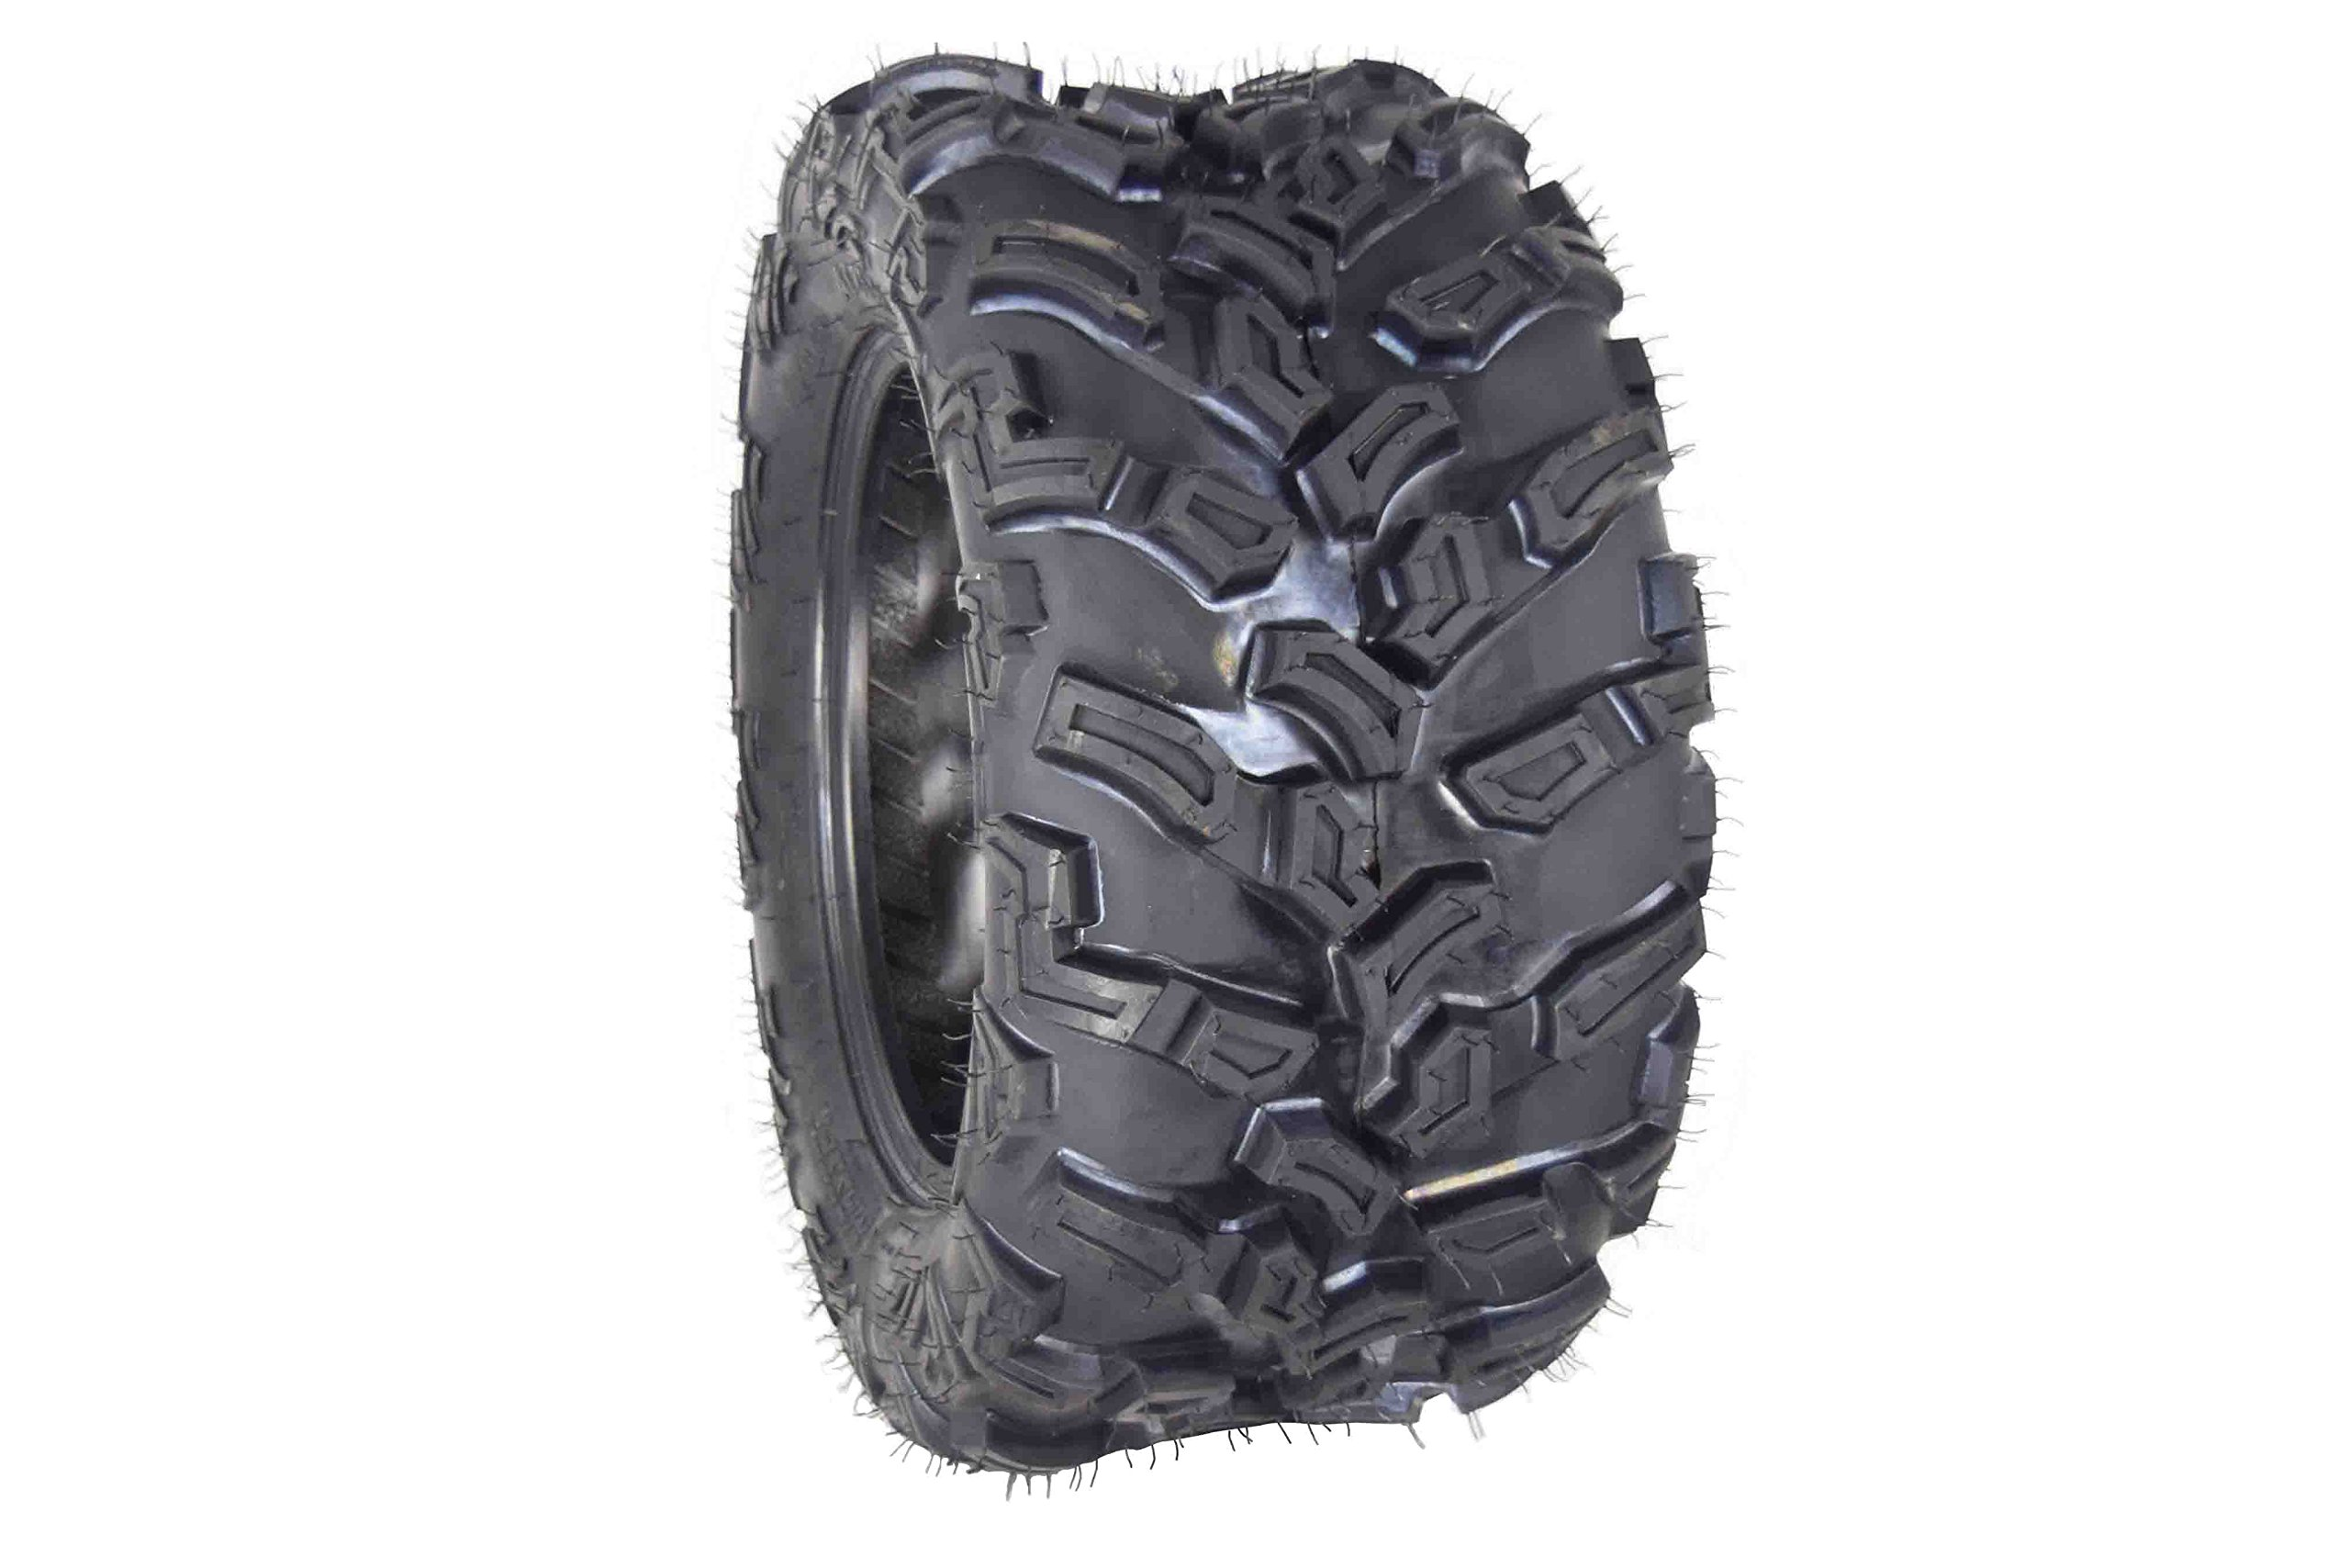 MASSFX ATV TIRE 26X11-14 Single ATV Tire Durable Dual Compound 6 Ply 26X11x14